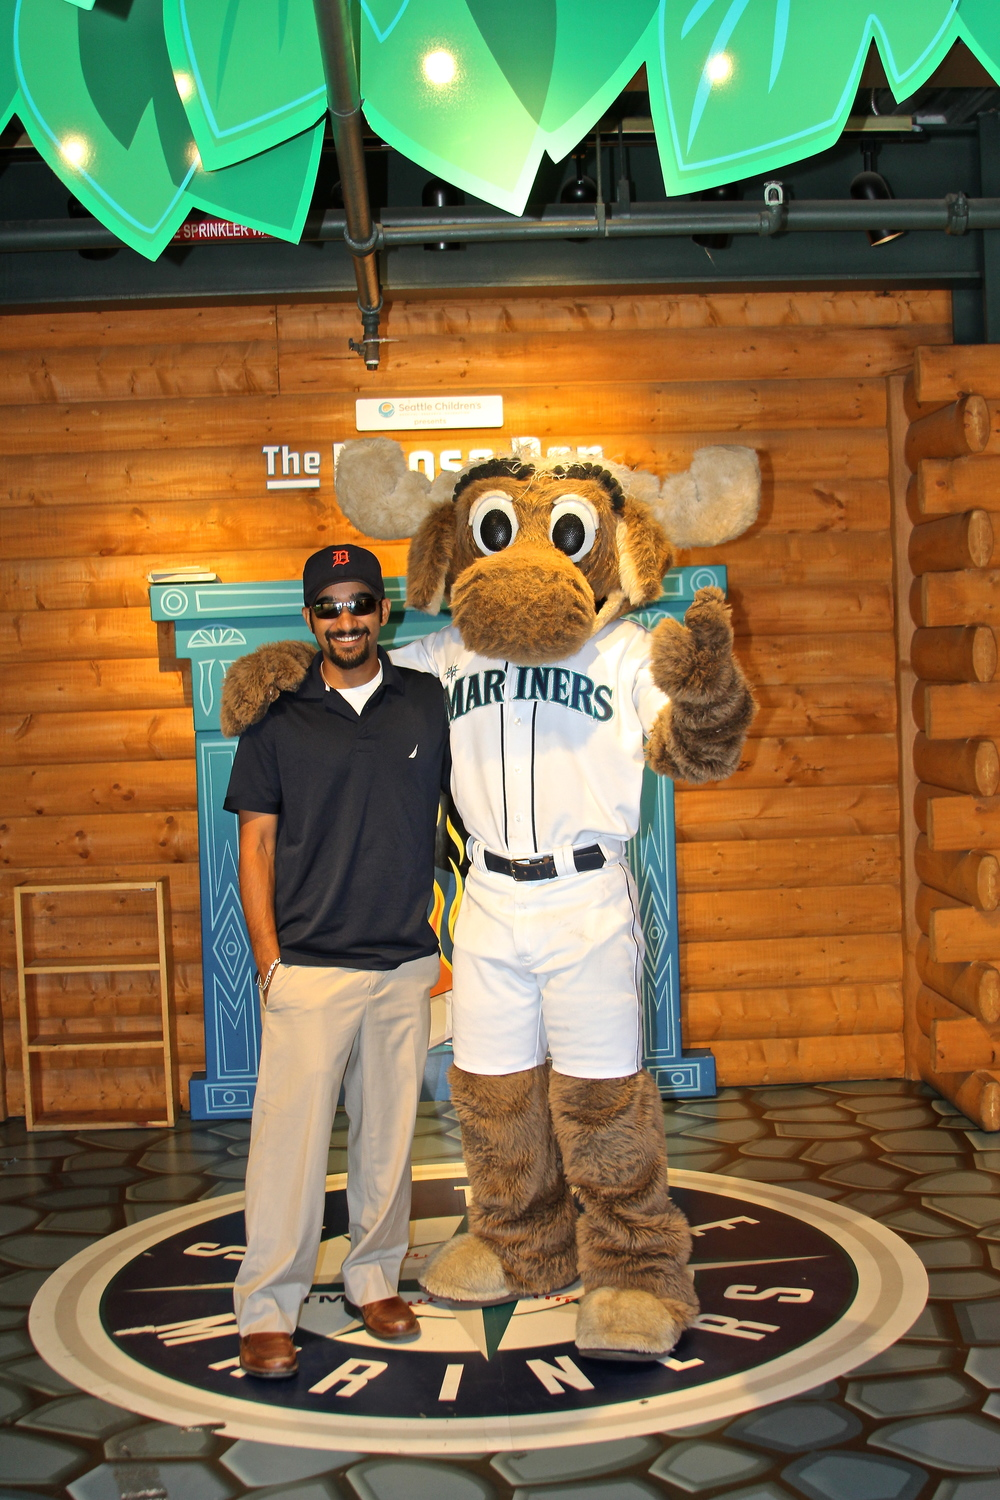 Me and Mariner Moose